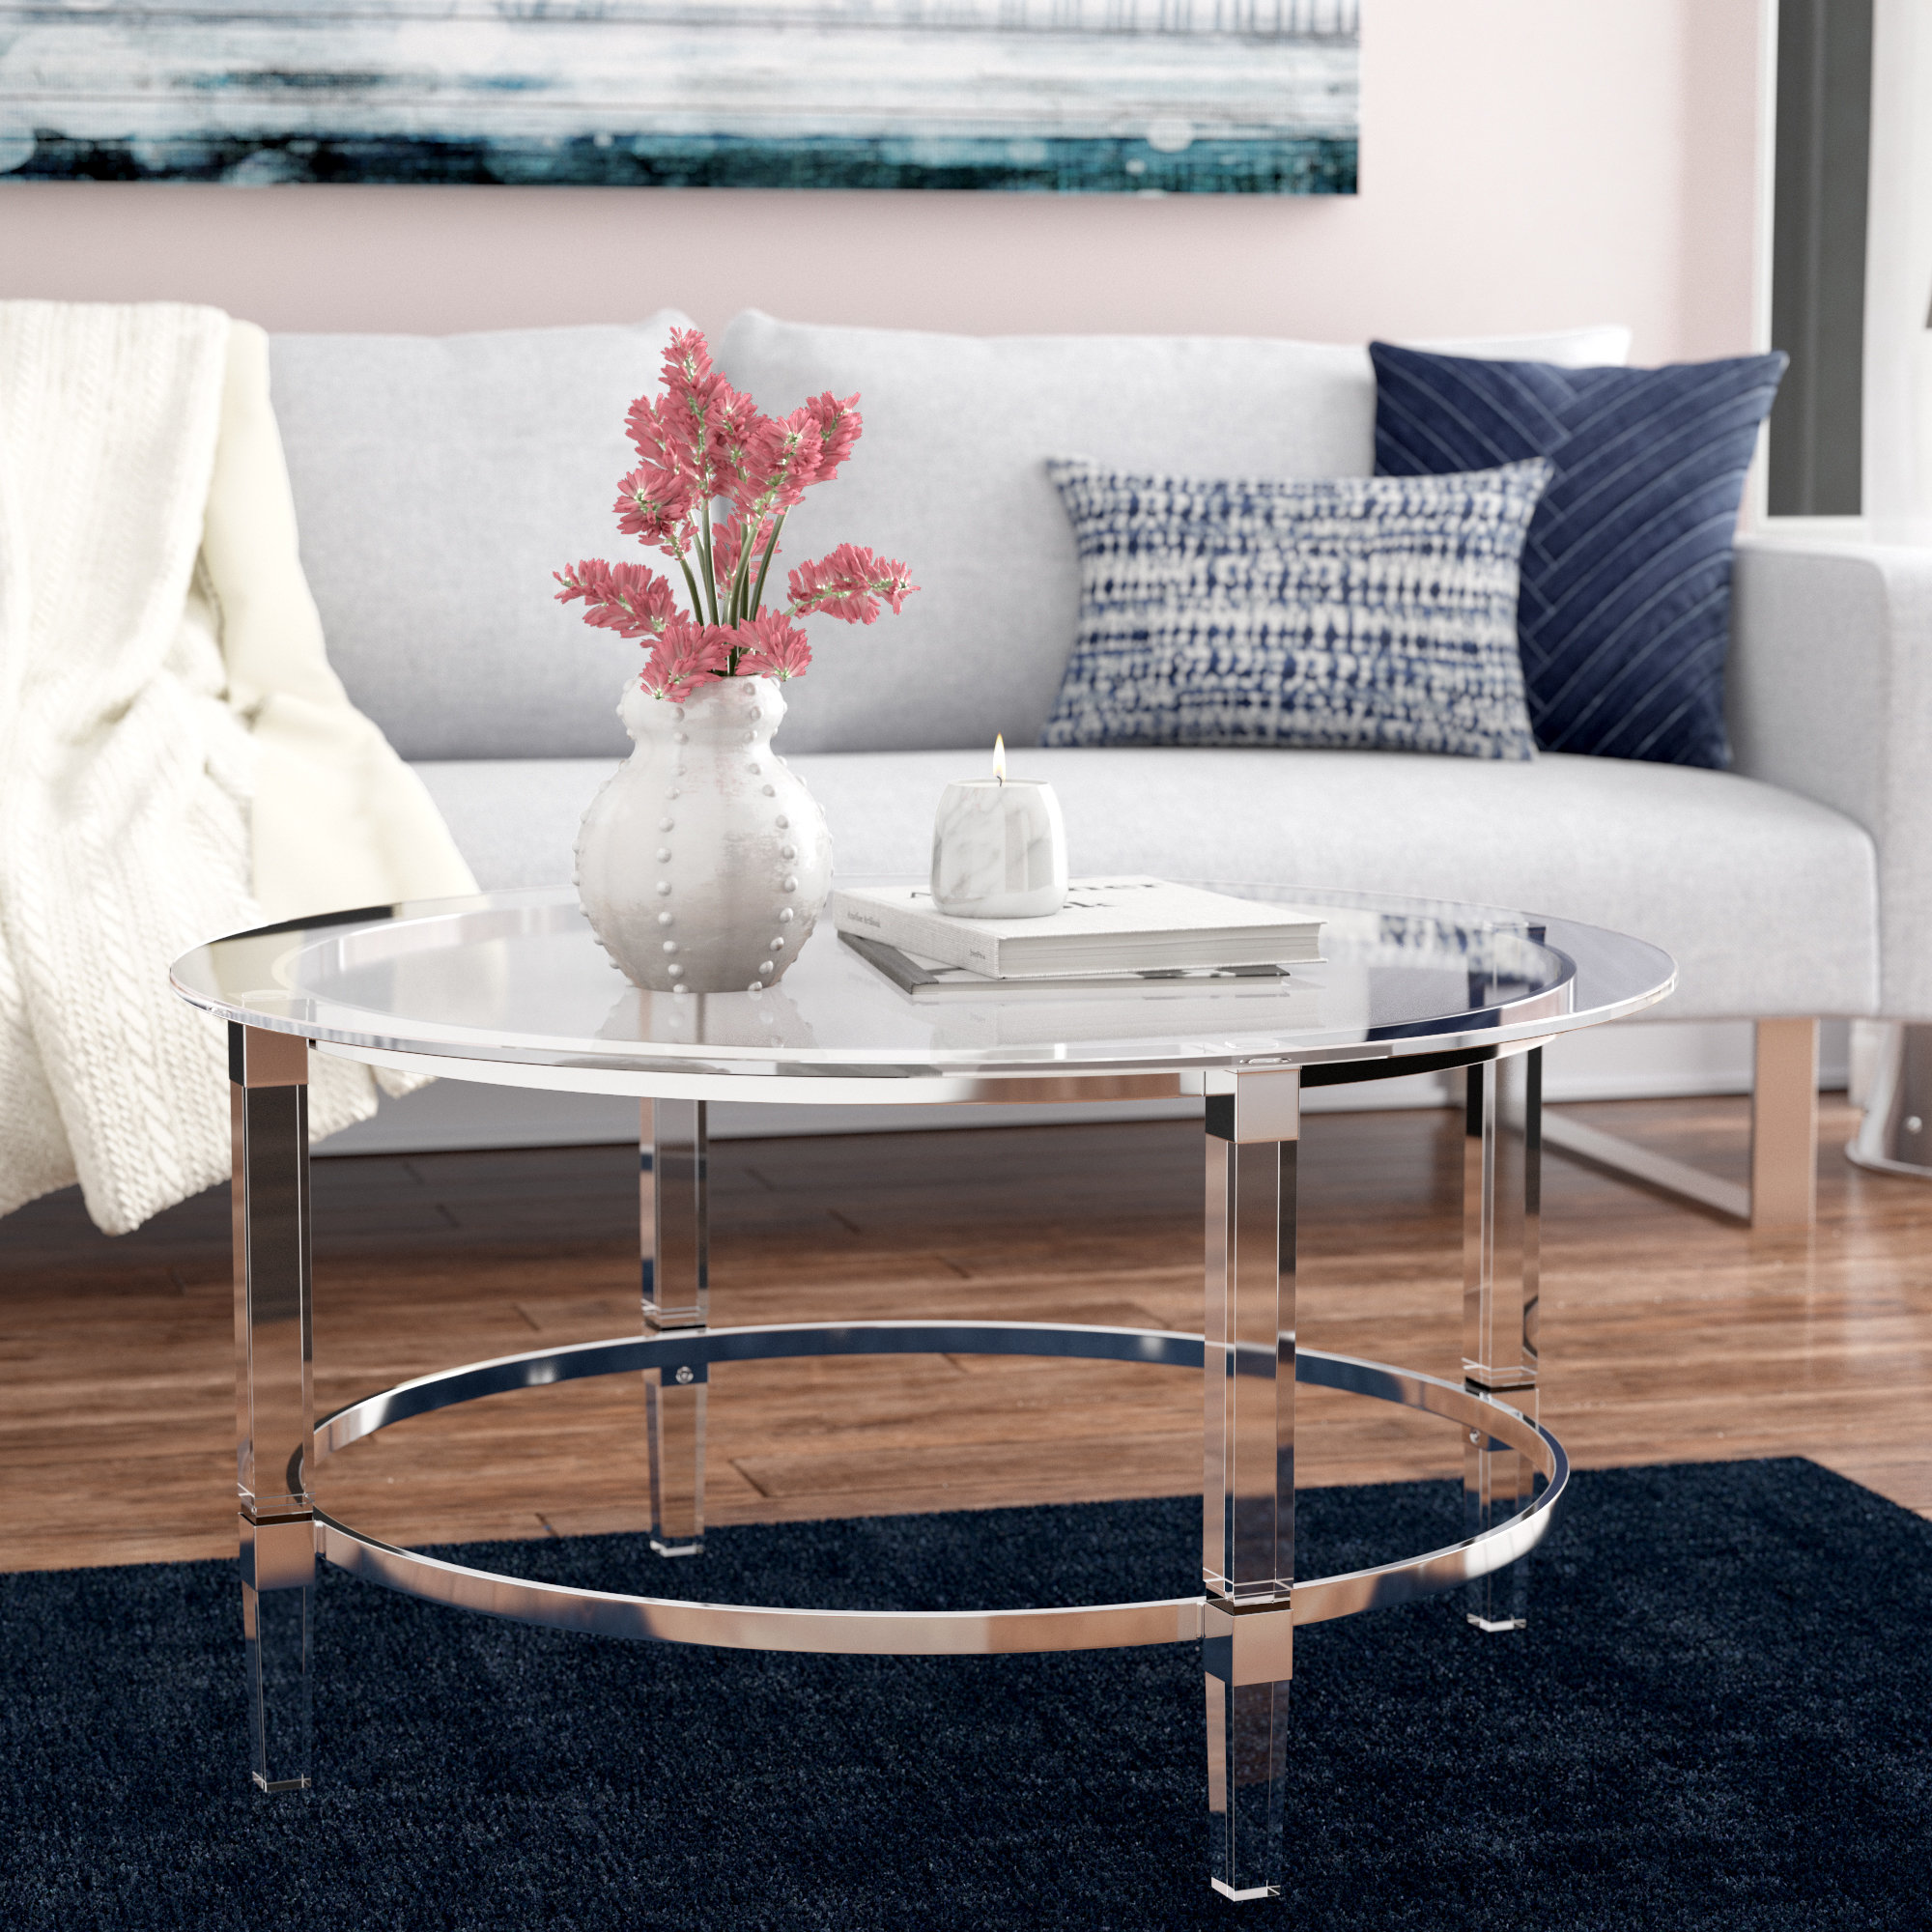 orren ellis lower vobster coffee table reviews glass lorelei accent white contemporary nautical dining room west elm pillar lamp dinette set long skinny tables black gold kmart